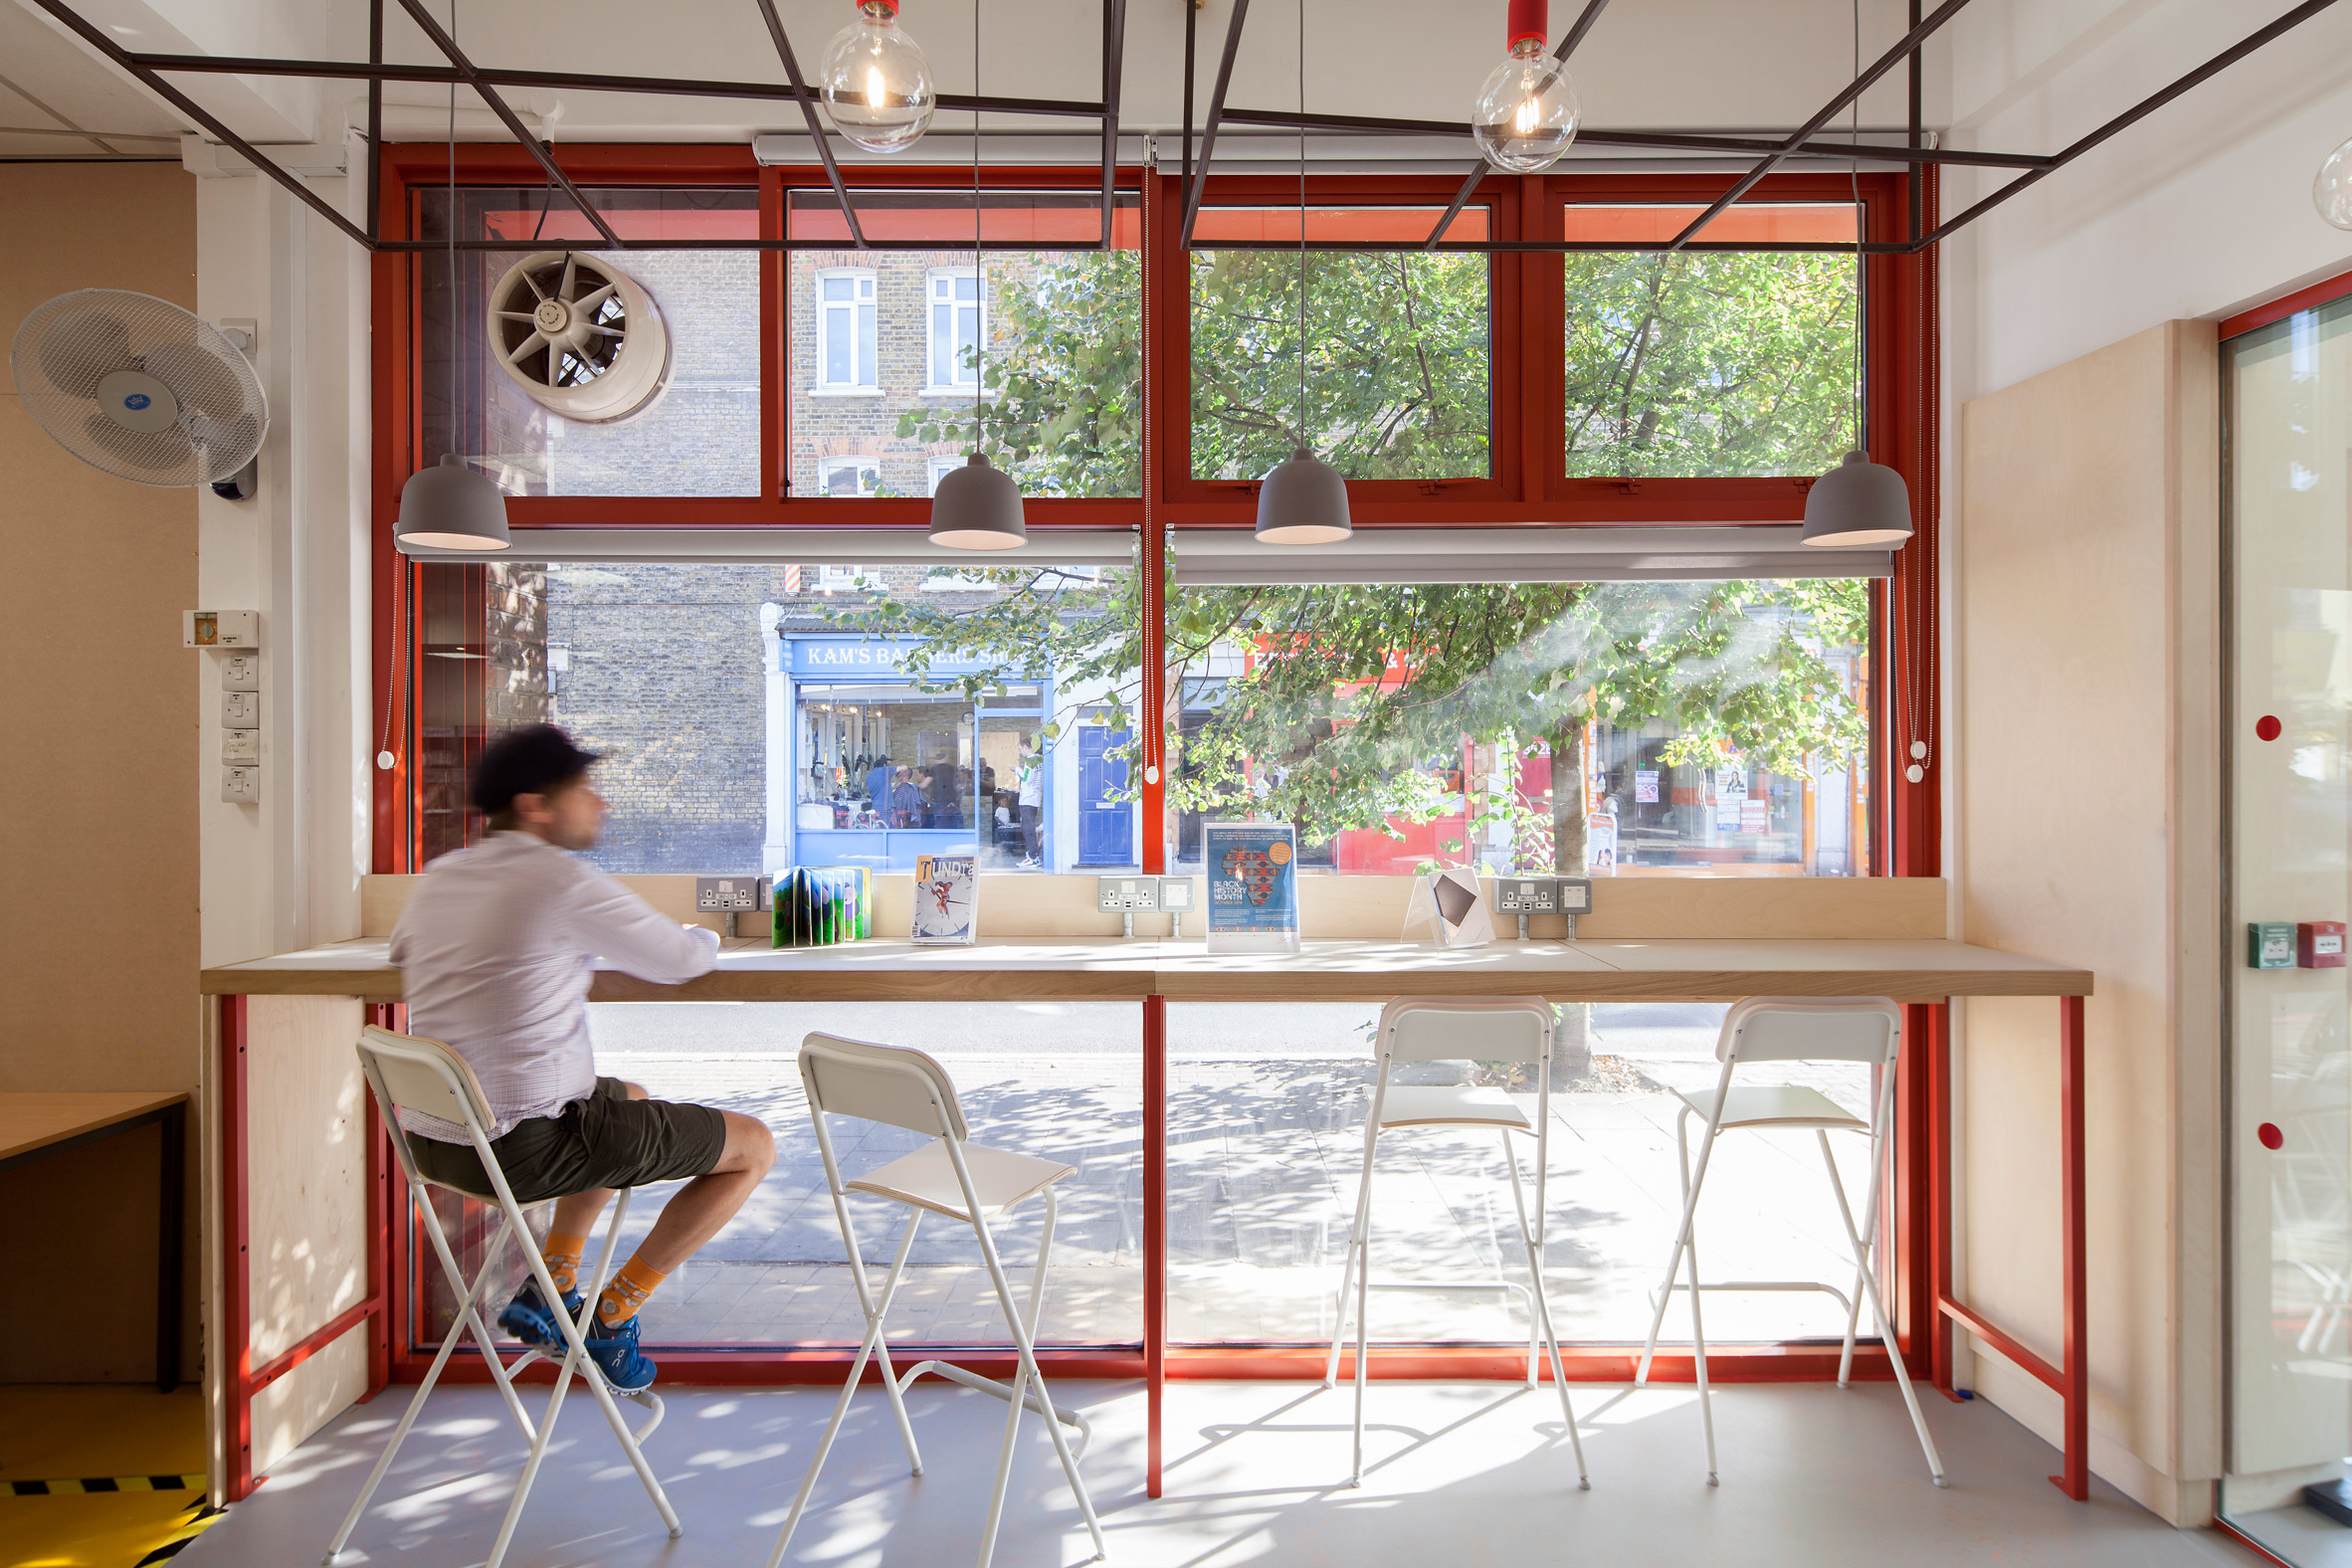 Interiors of East Street Exchange by We Made That